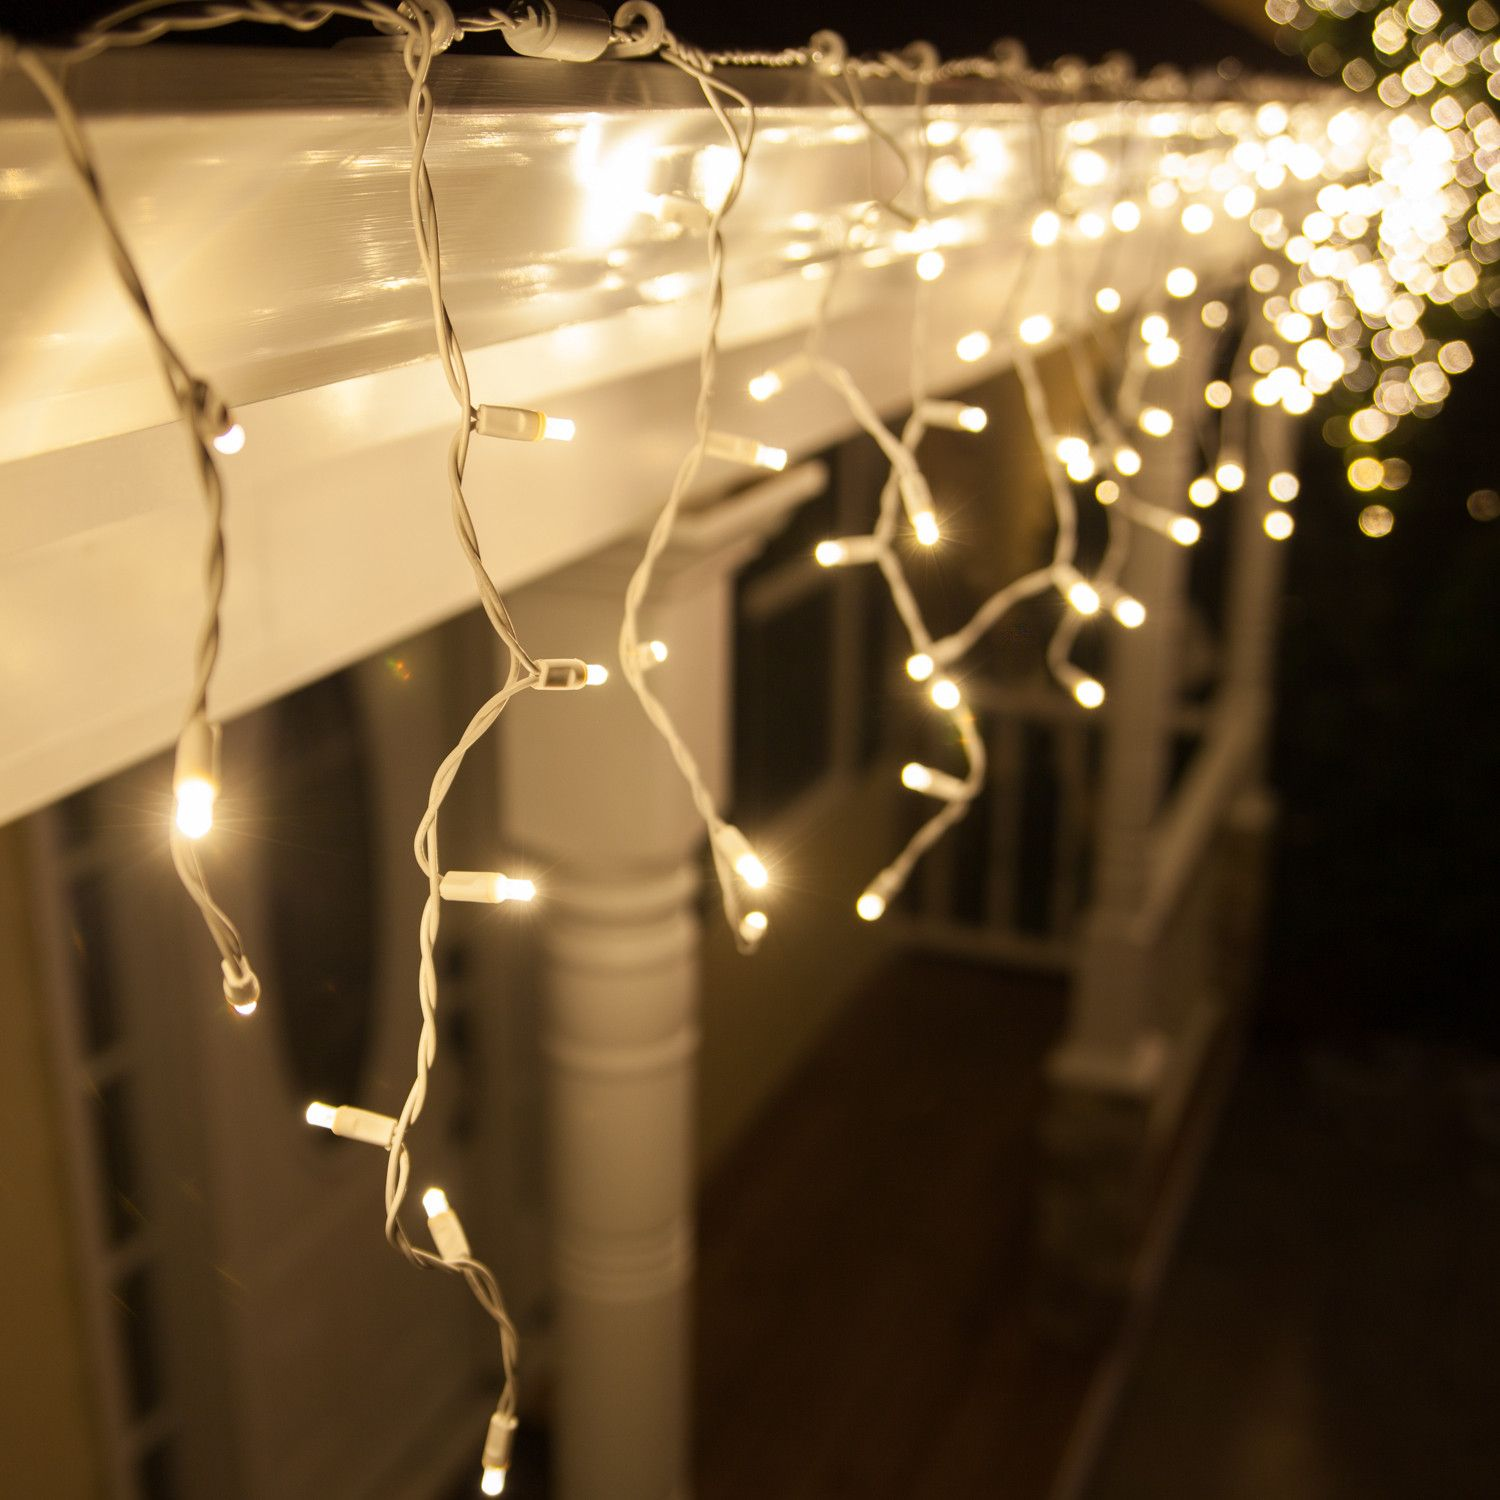 70 5mm warm white twinkle led icicle lights icicle lights led led christmas lights 70 5mm warm white twinkle led icicle lights christmas lights etc workwithnaturefo